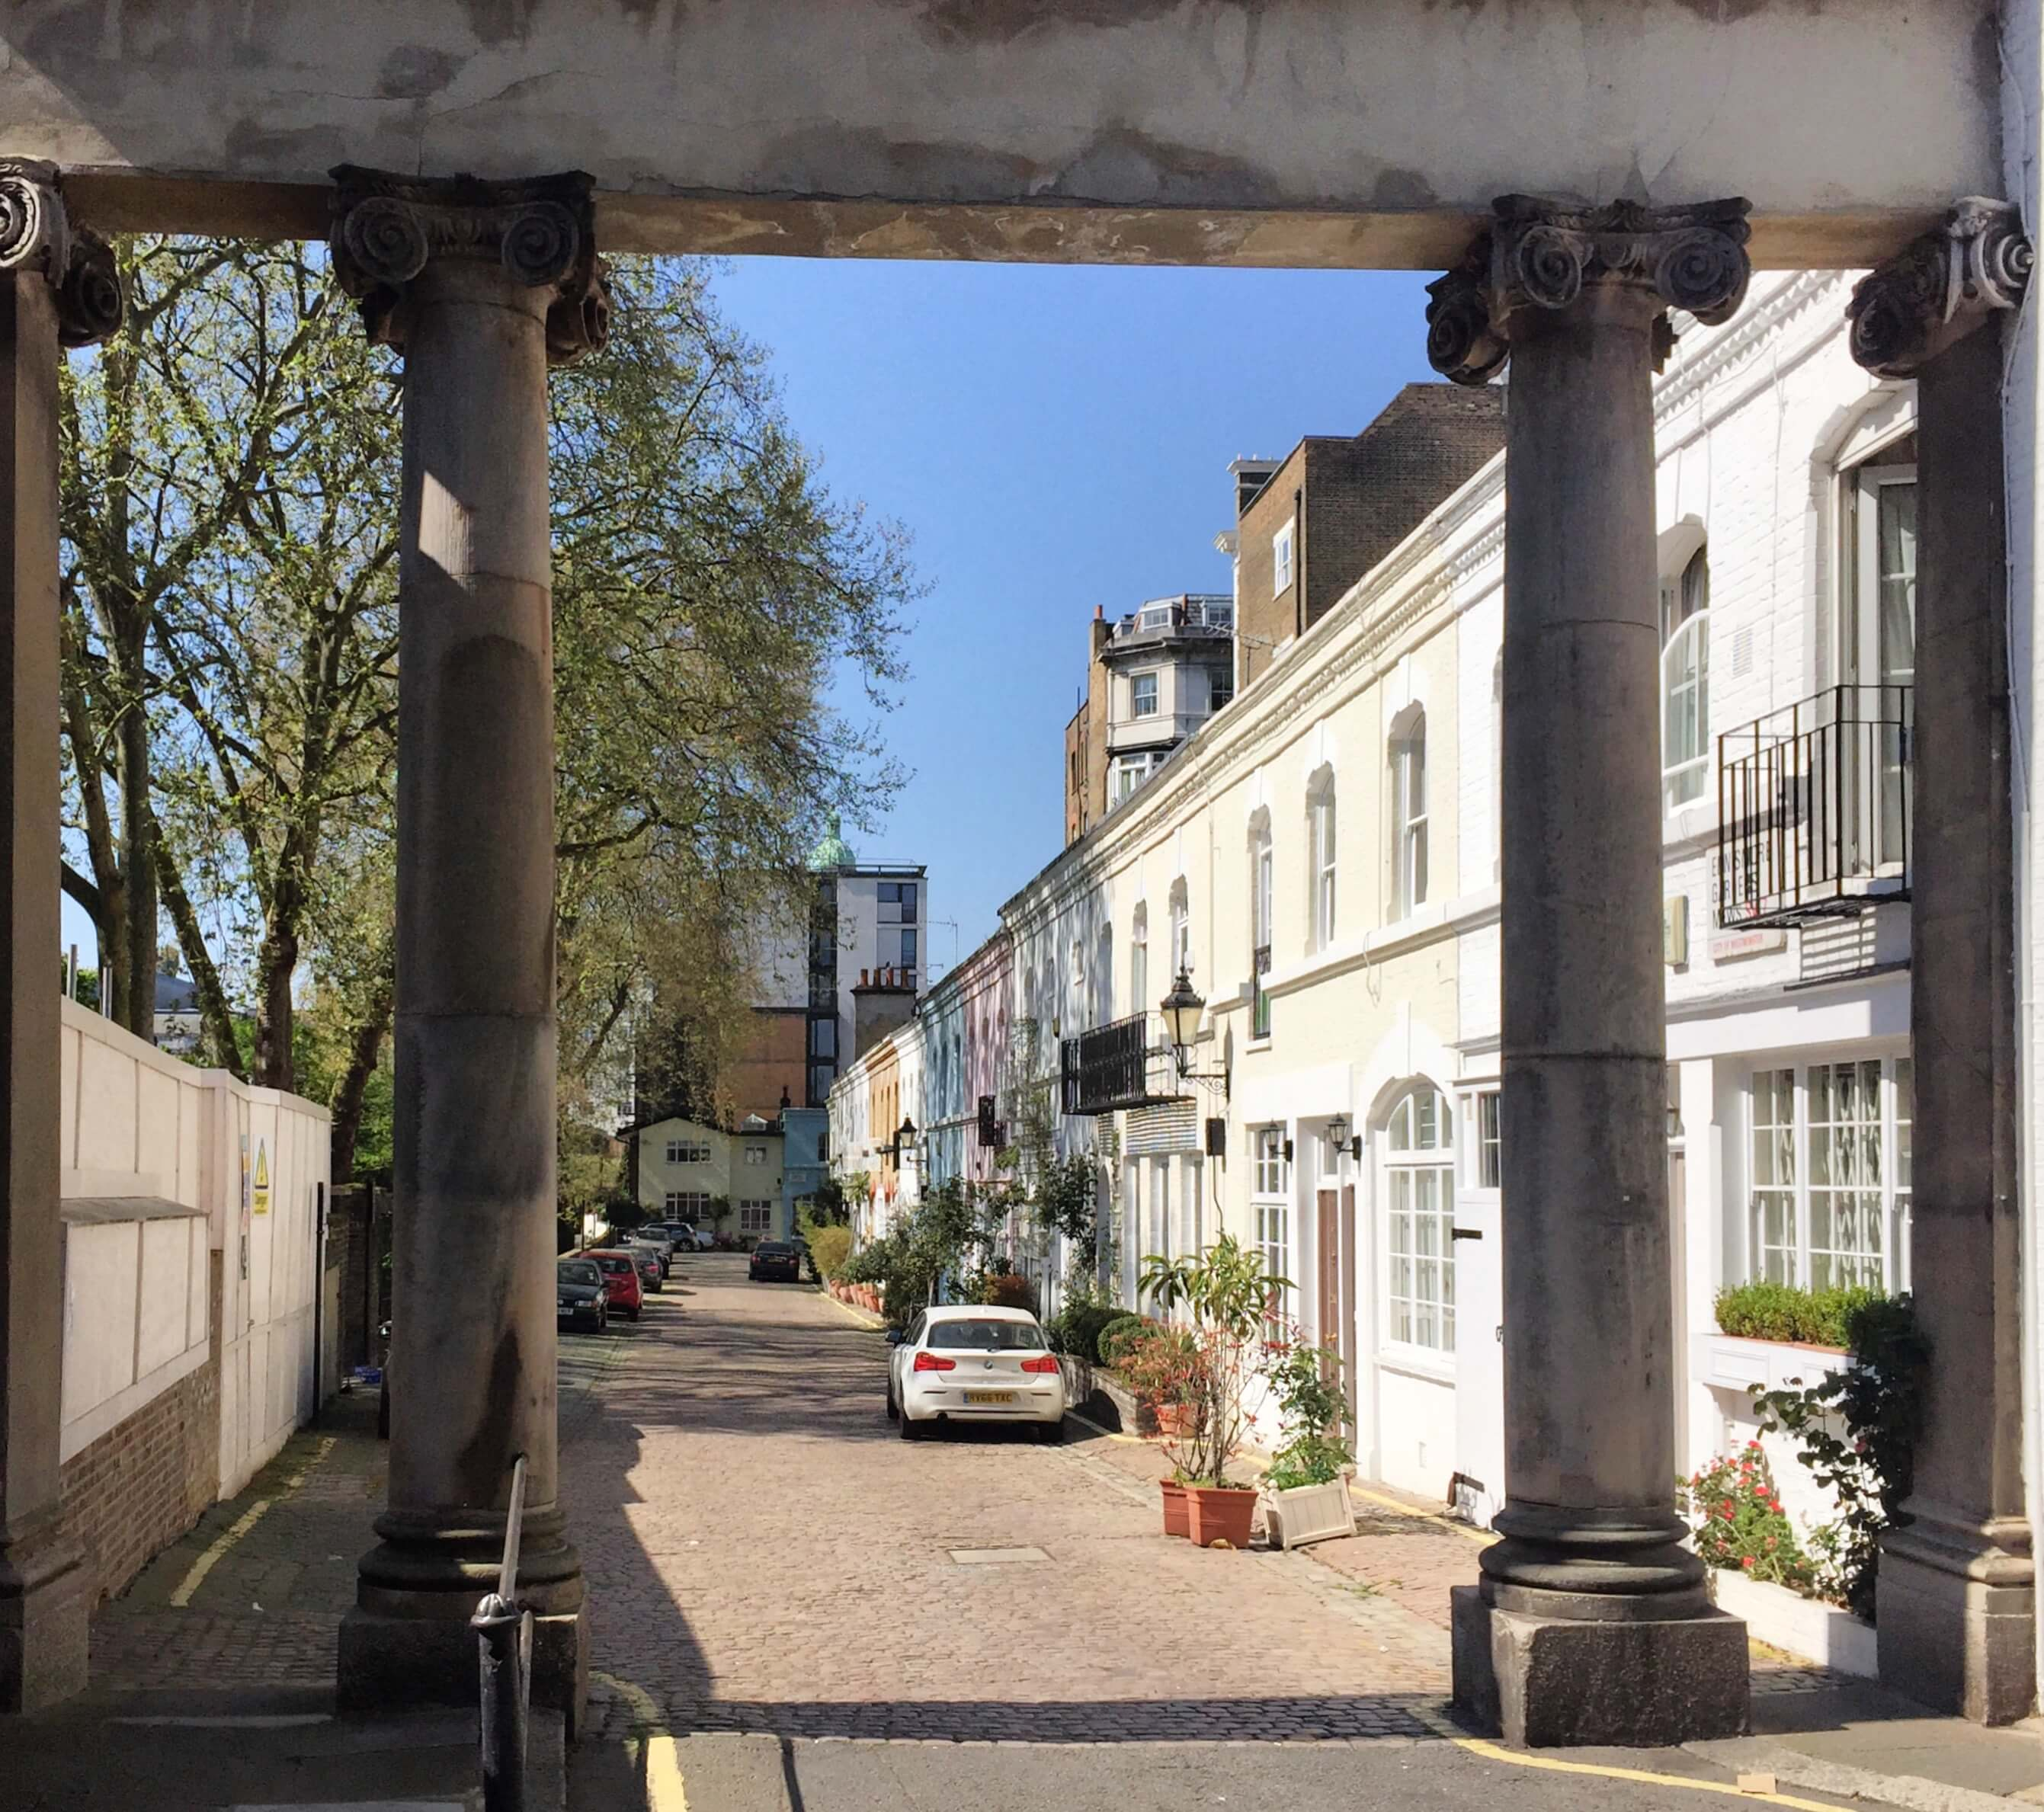 Ennismore Gardens Mews, South Kensington, London